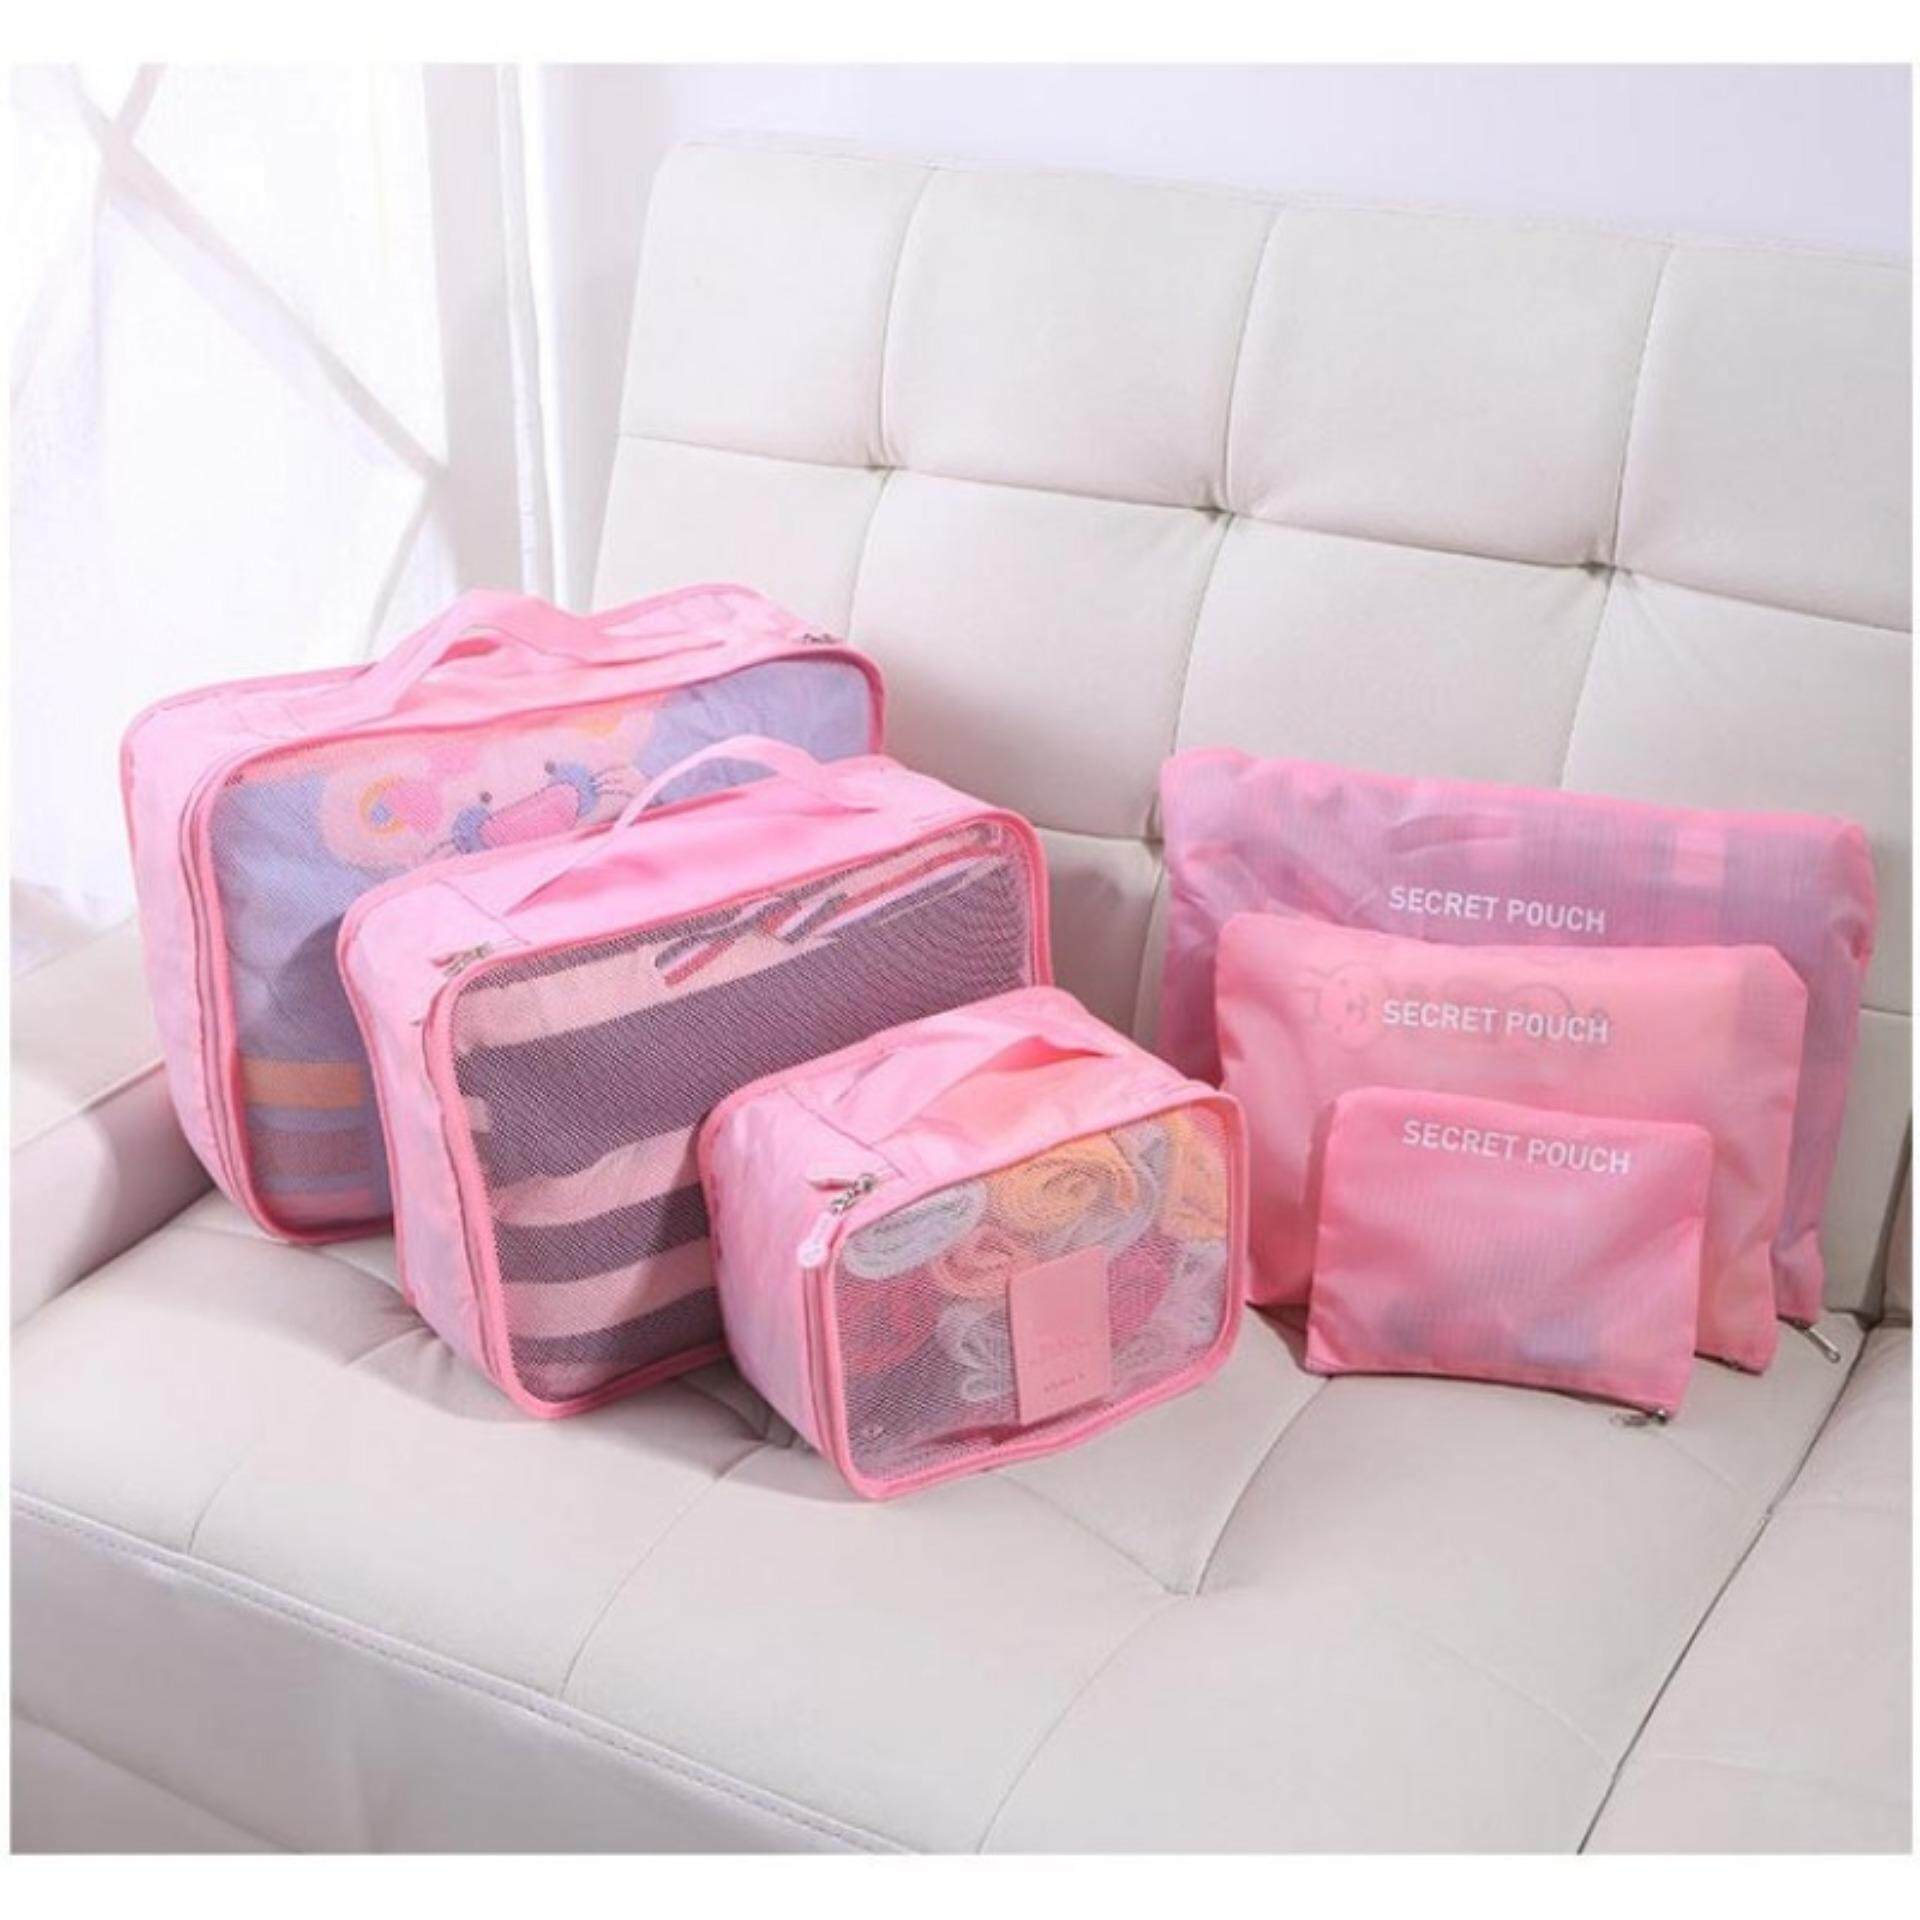 Peach Pink 6 in 1 Travel Pouch